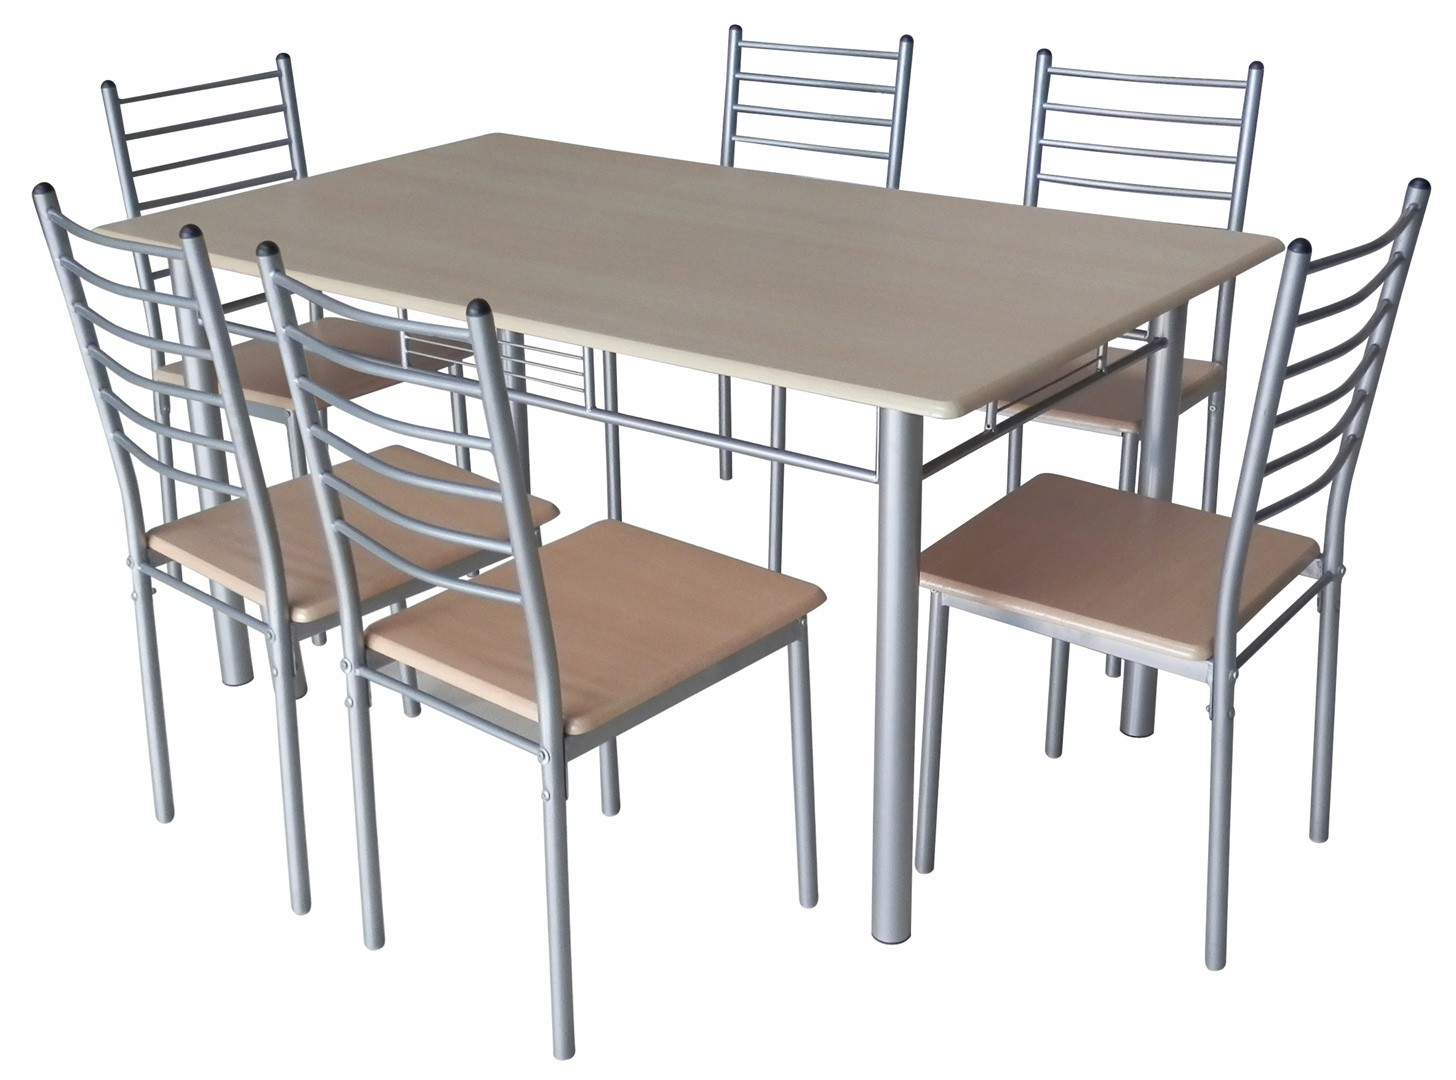 Ensemble table et chaises de cuisine but chaise id es de d coration de ma - Table et chaise moderne ...